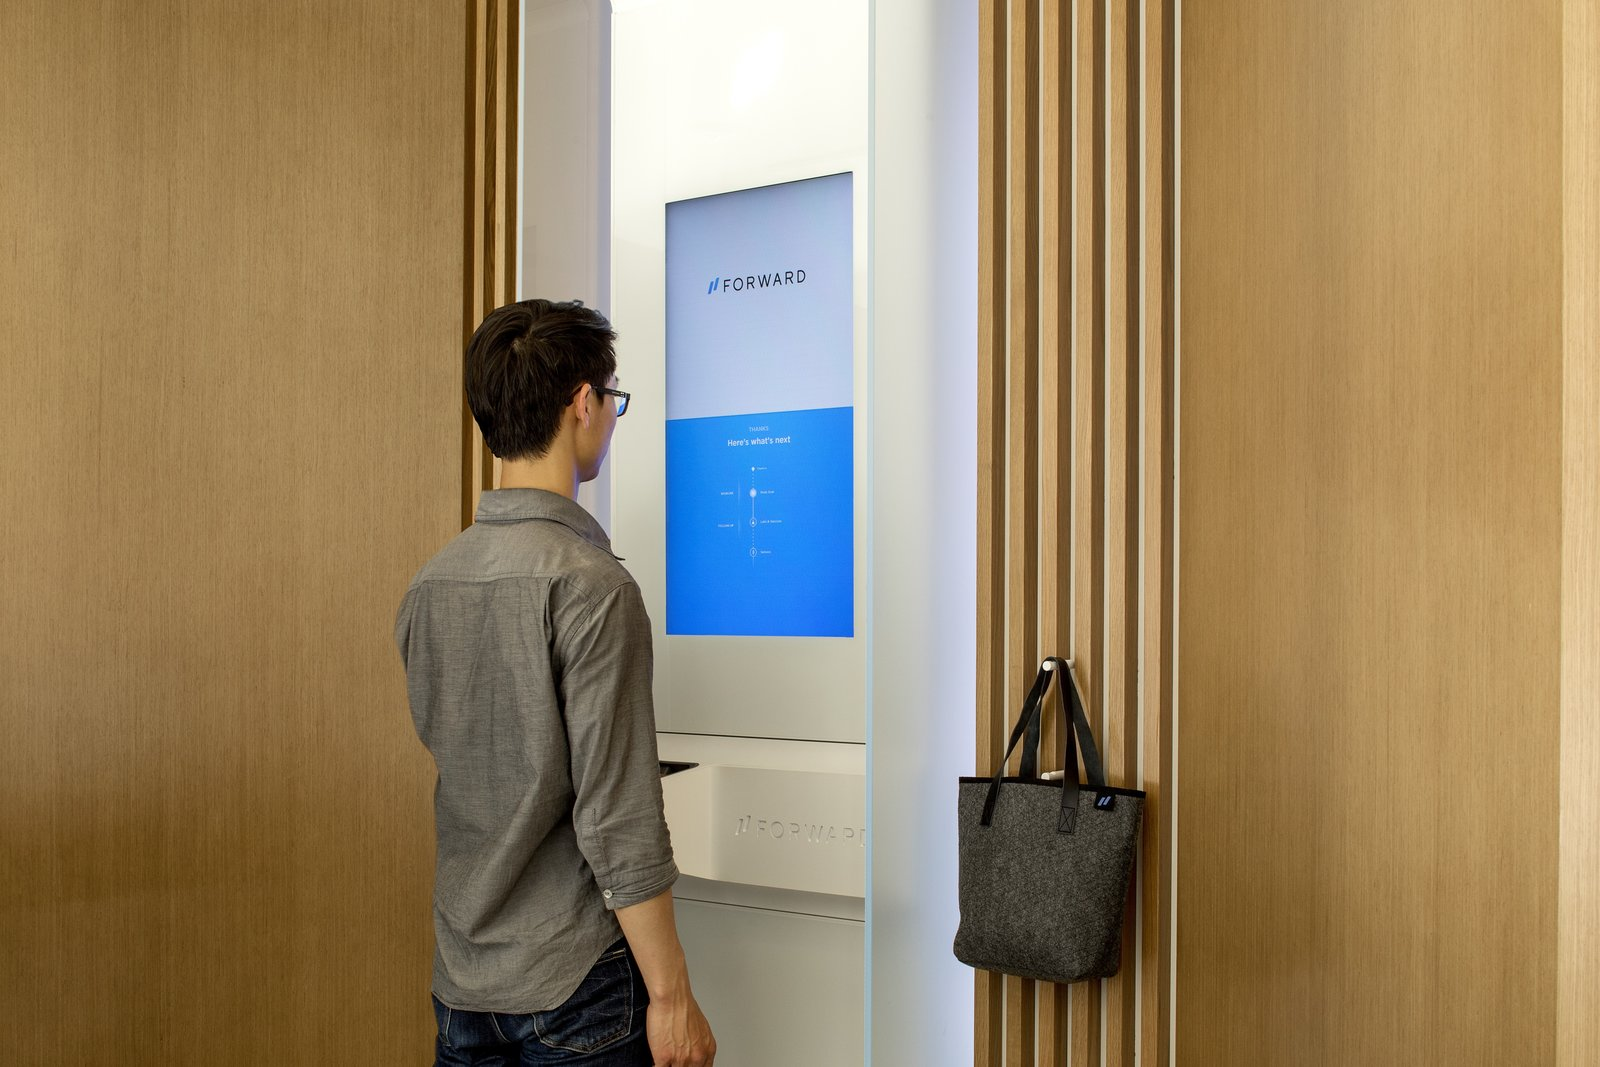 Office Patients can view their own body scan results from an app on their phone, while the doctors access the information inside the exam room.  Photo 7 of 12 in A Healthcare Start-Up Combines Modern Design With Top-Notch Technology and Care